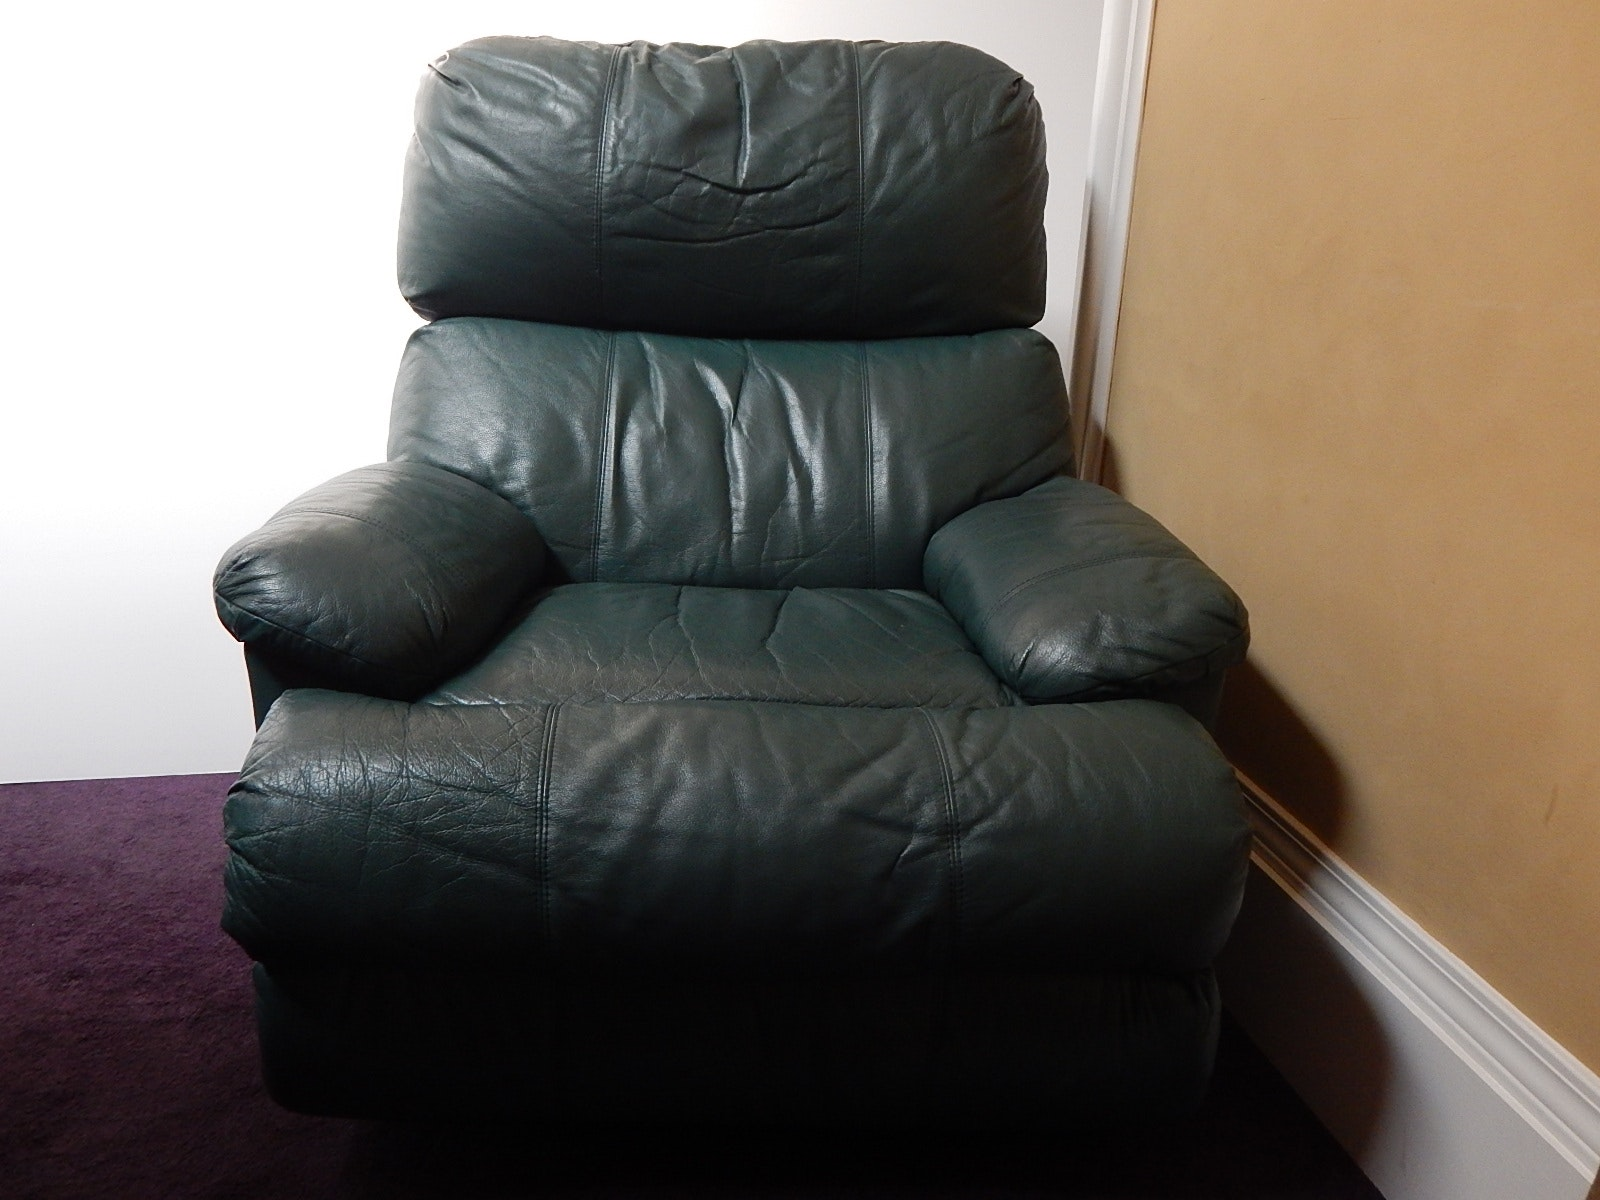 Teal Green Vinyl/Leather Recliner Chair ... & Teal Green Vinyl/Leather Recliner Chair : EBTH islam-shia.org